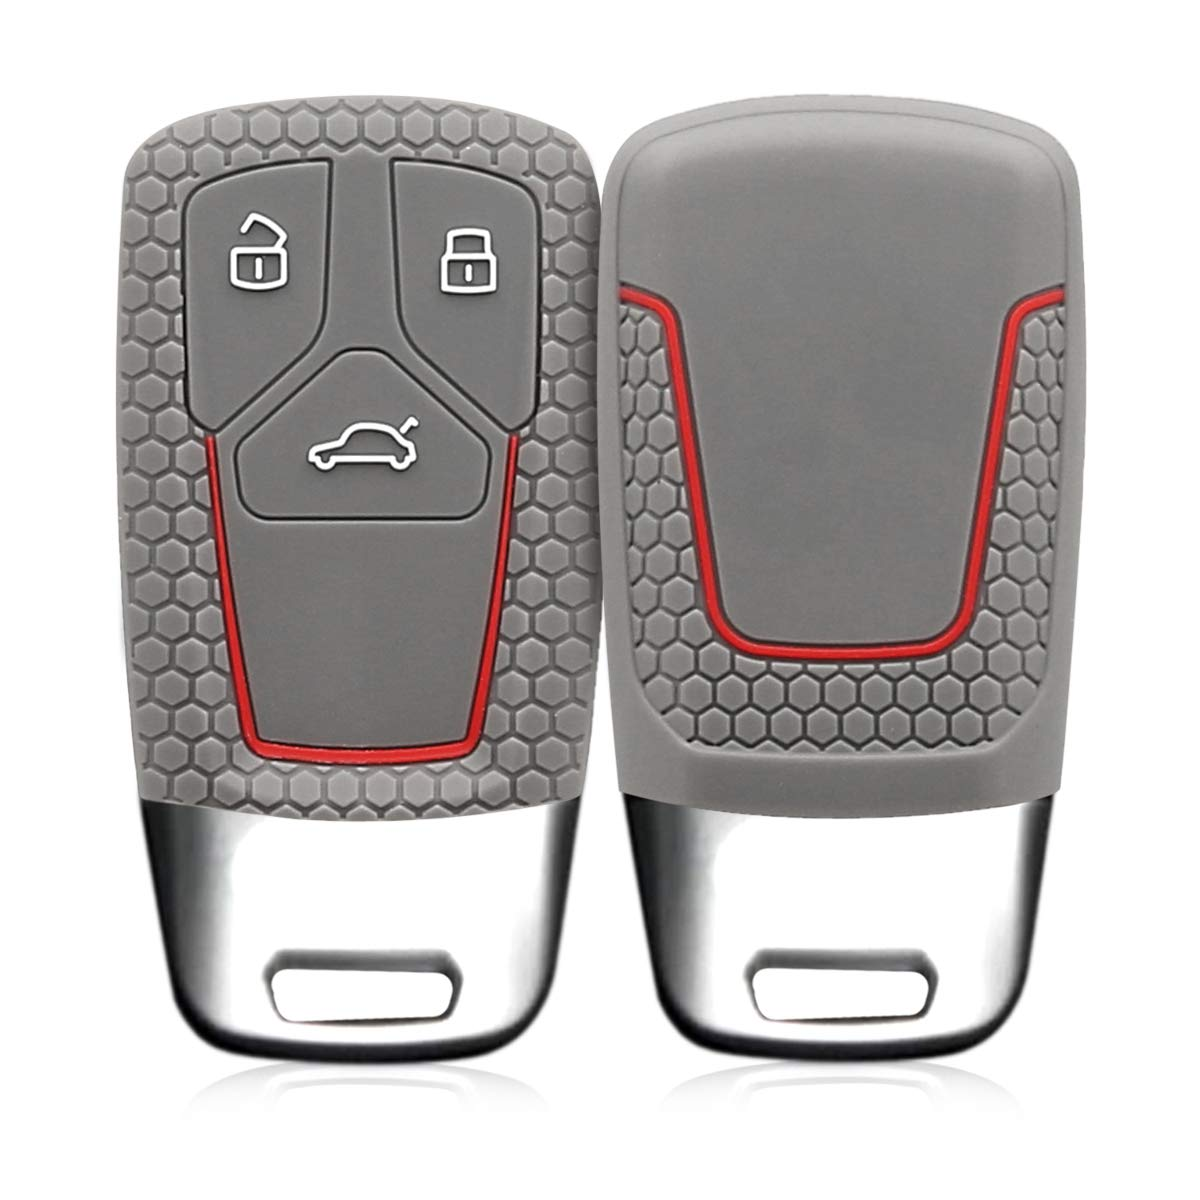 Black kwmobile Car Key Cover Compatible with Audi 3 Button Car Key Smart Key only Keyless Go - Silicone Protective Key Fob Cover